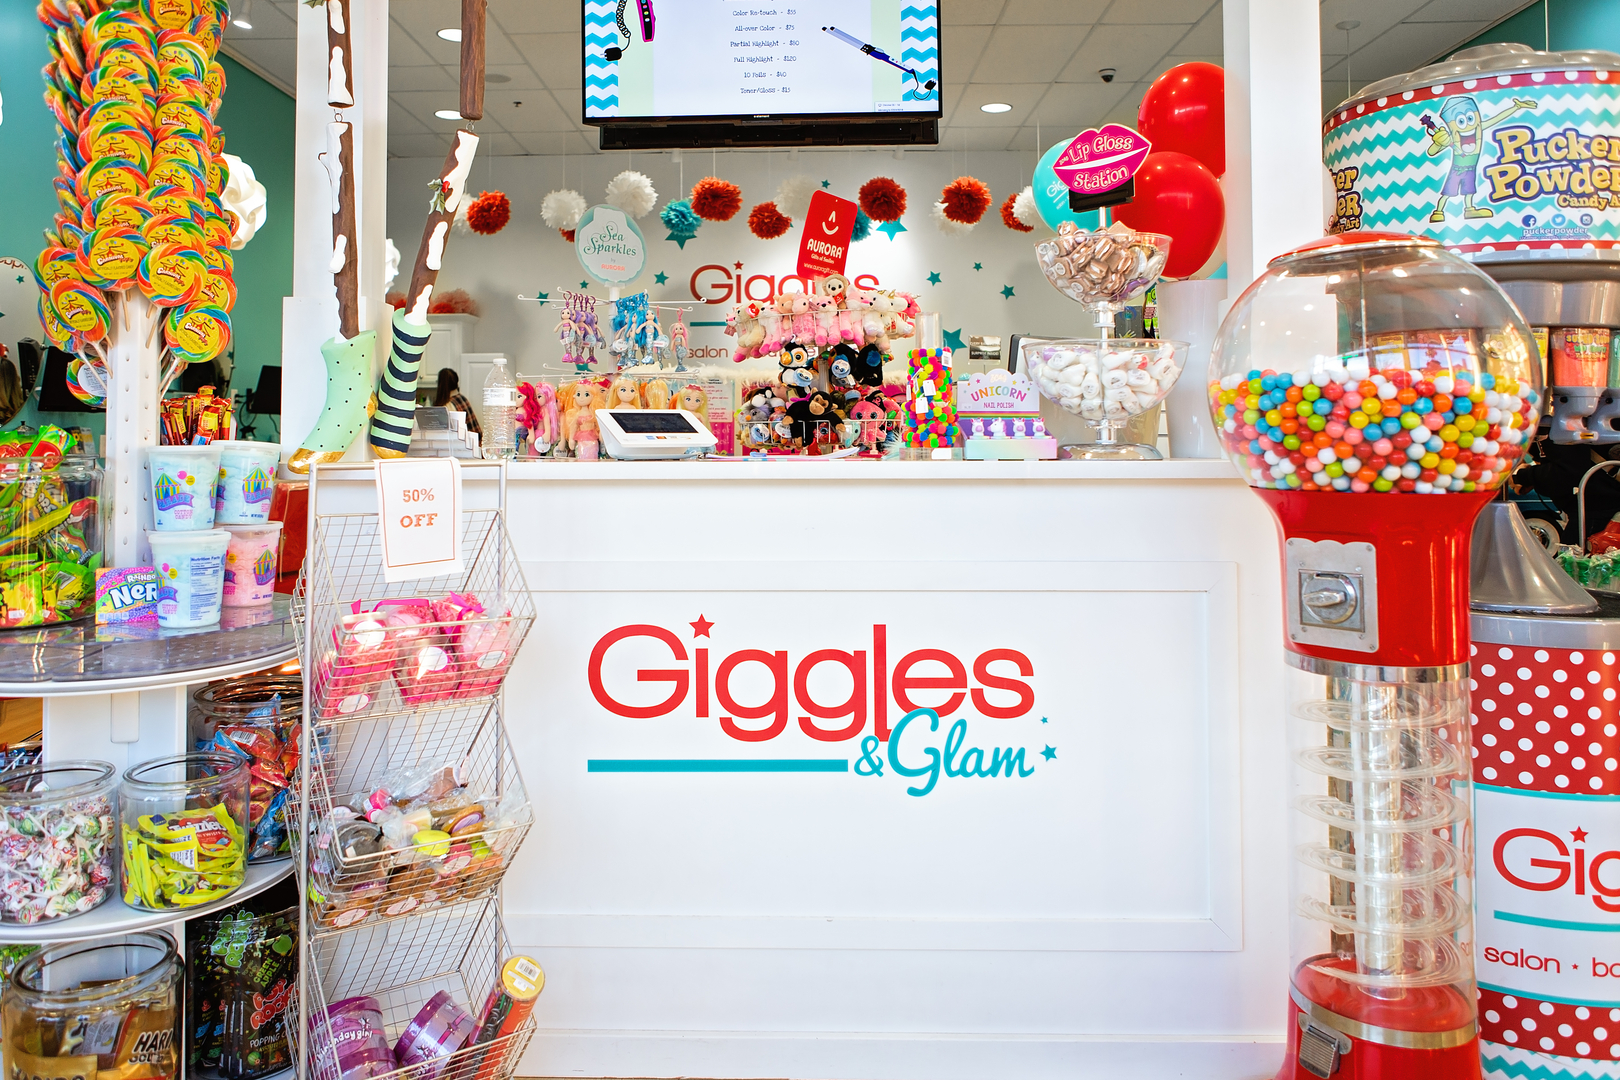 Giggles & Glam Salon - Birthday Party Places, Kids Haircuts